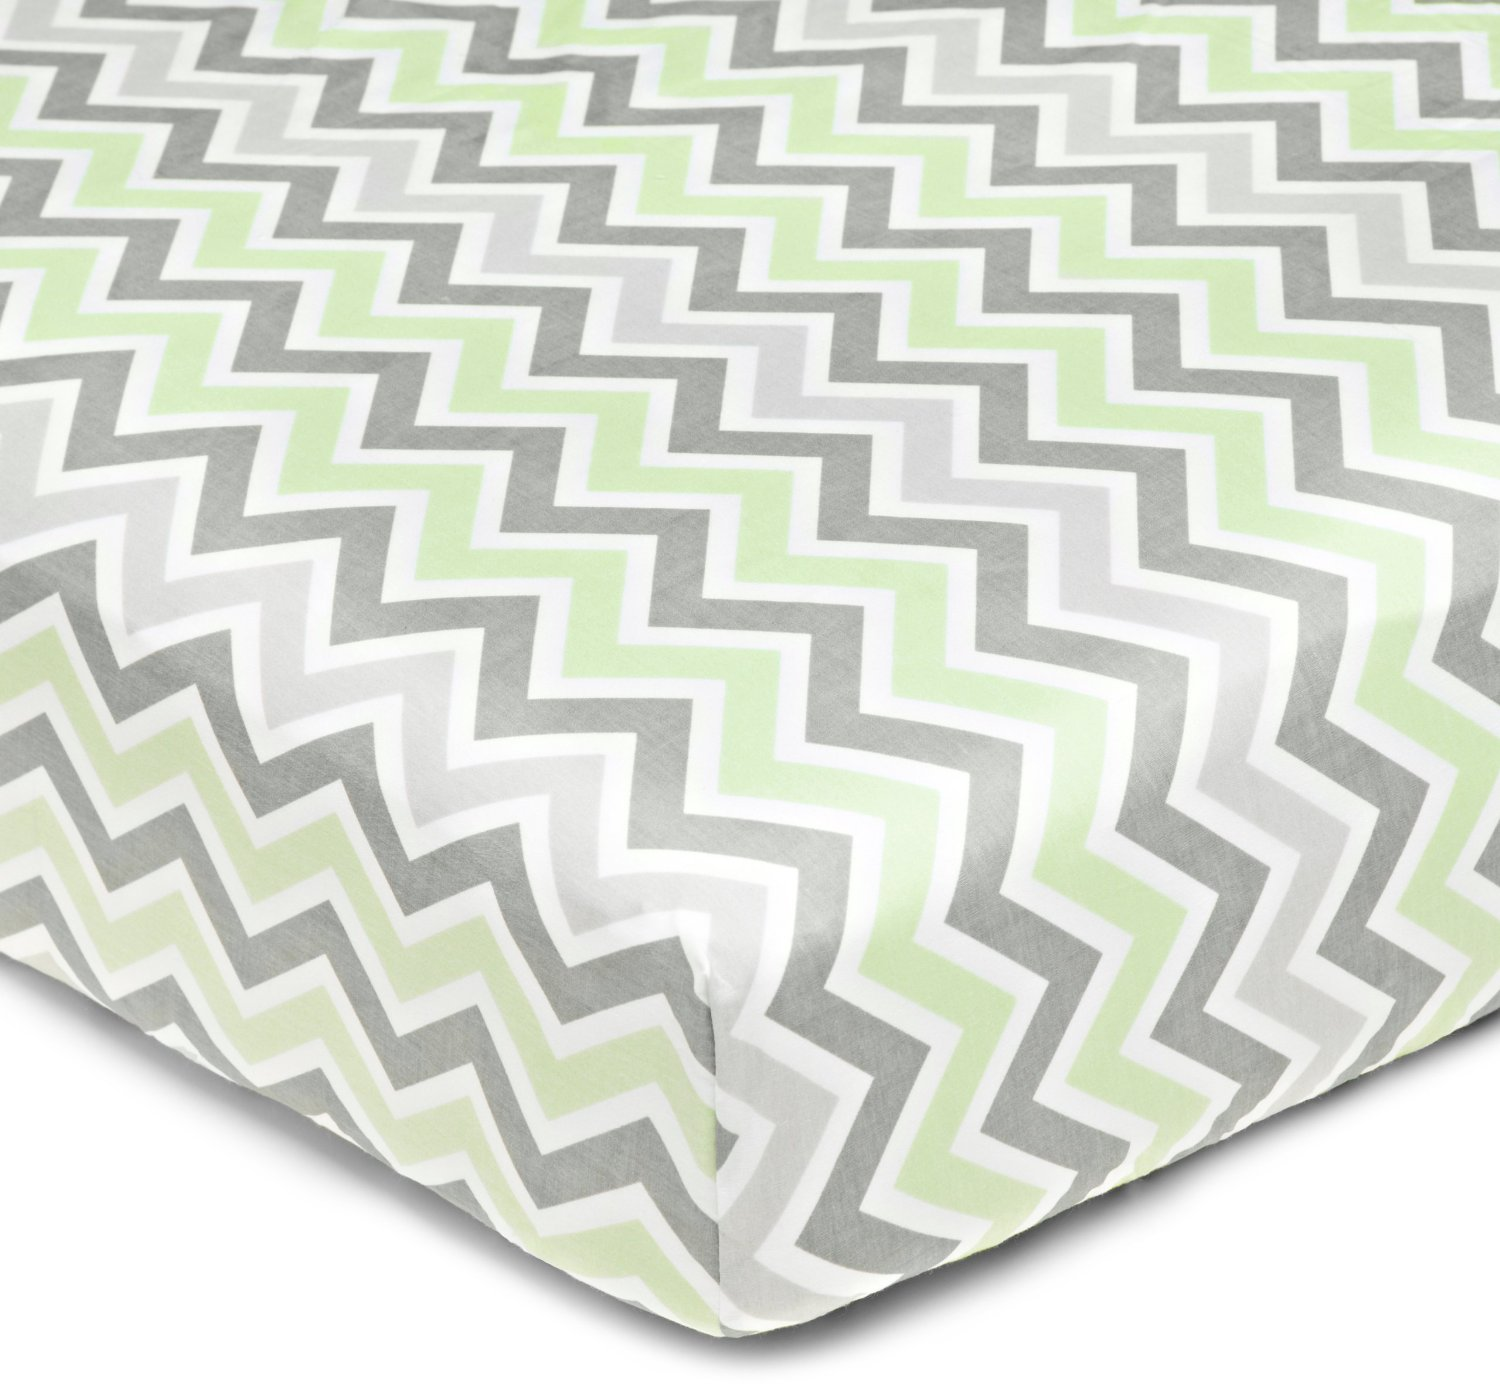 American Baby Company 1% Cotton Percale Crib Sheet - Gray Celery  Zigzag